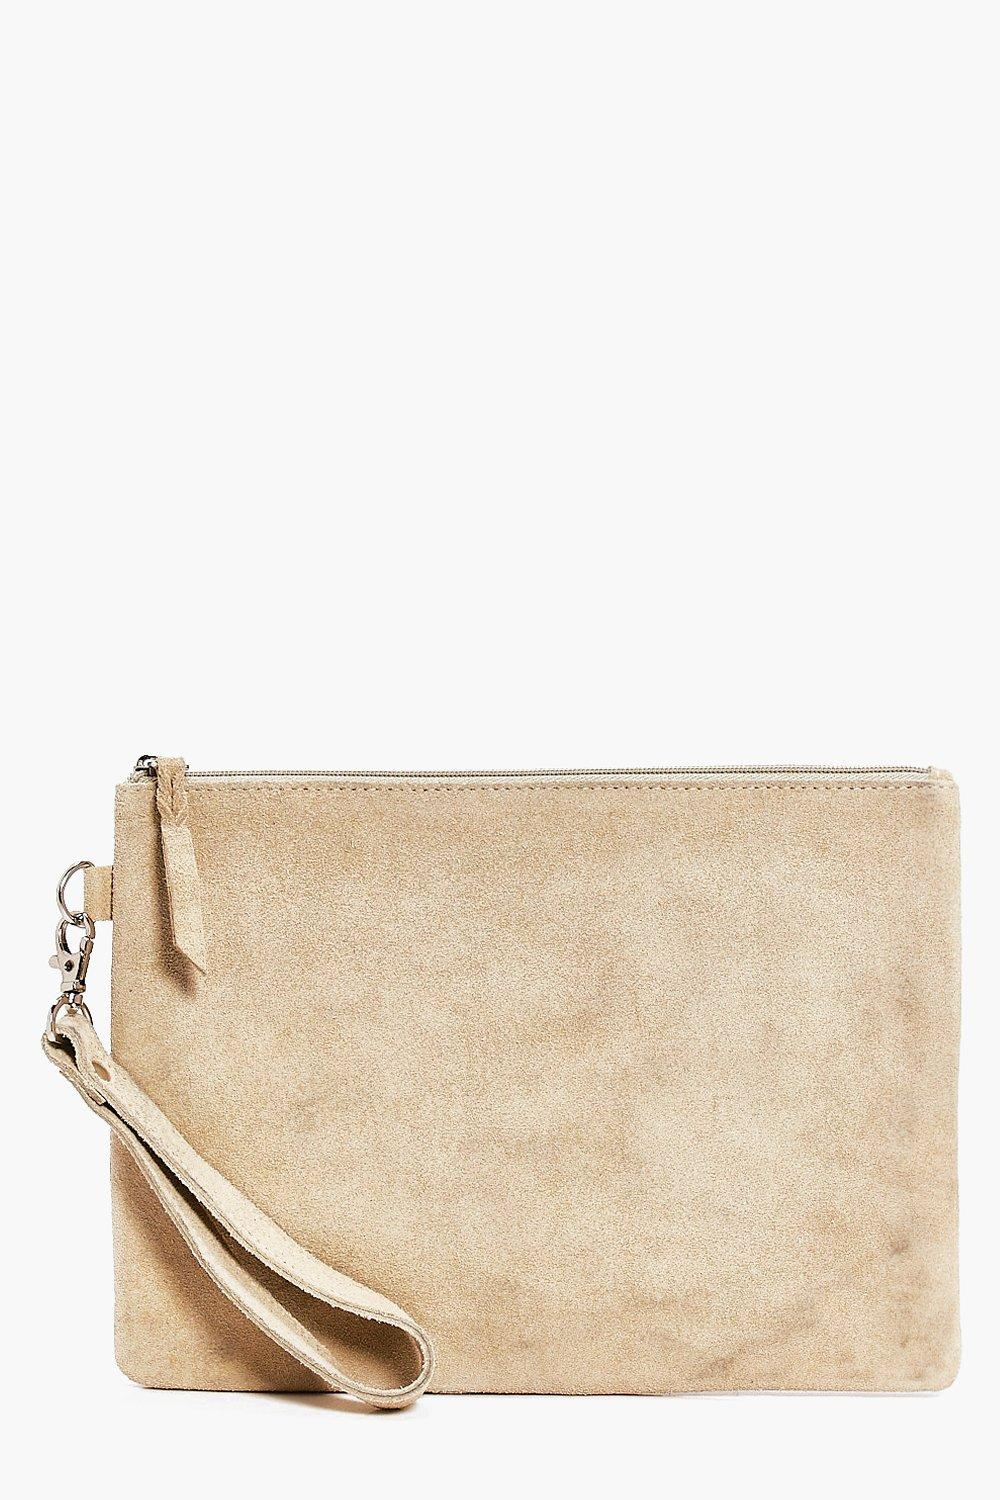 Boutique Leather Zip Top Clutch - nude - Lucy Bout